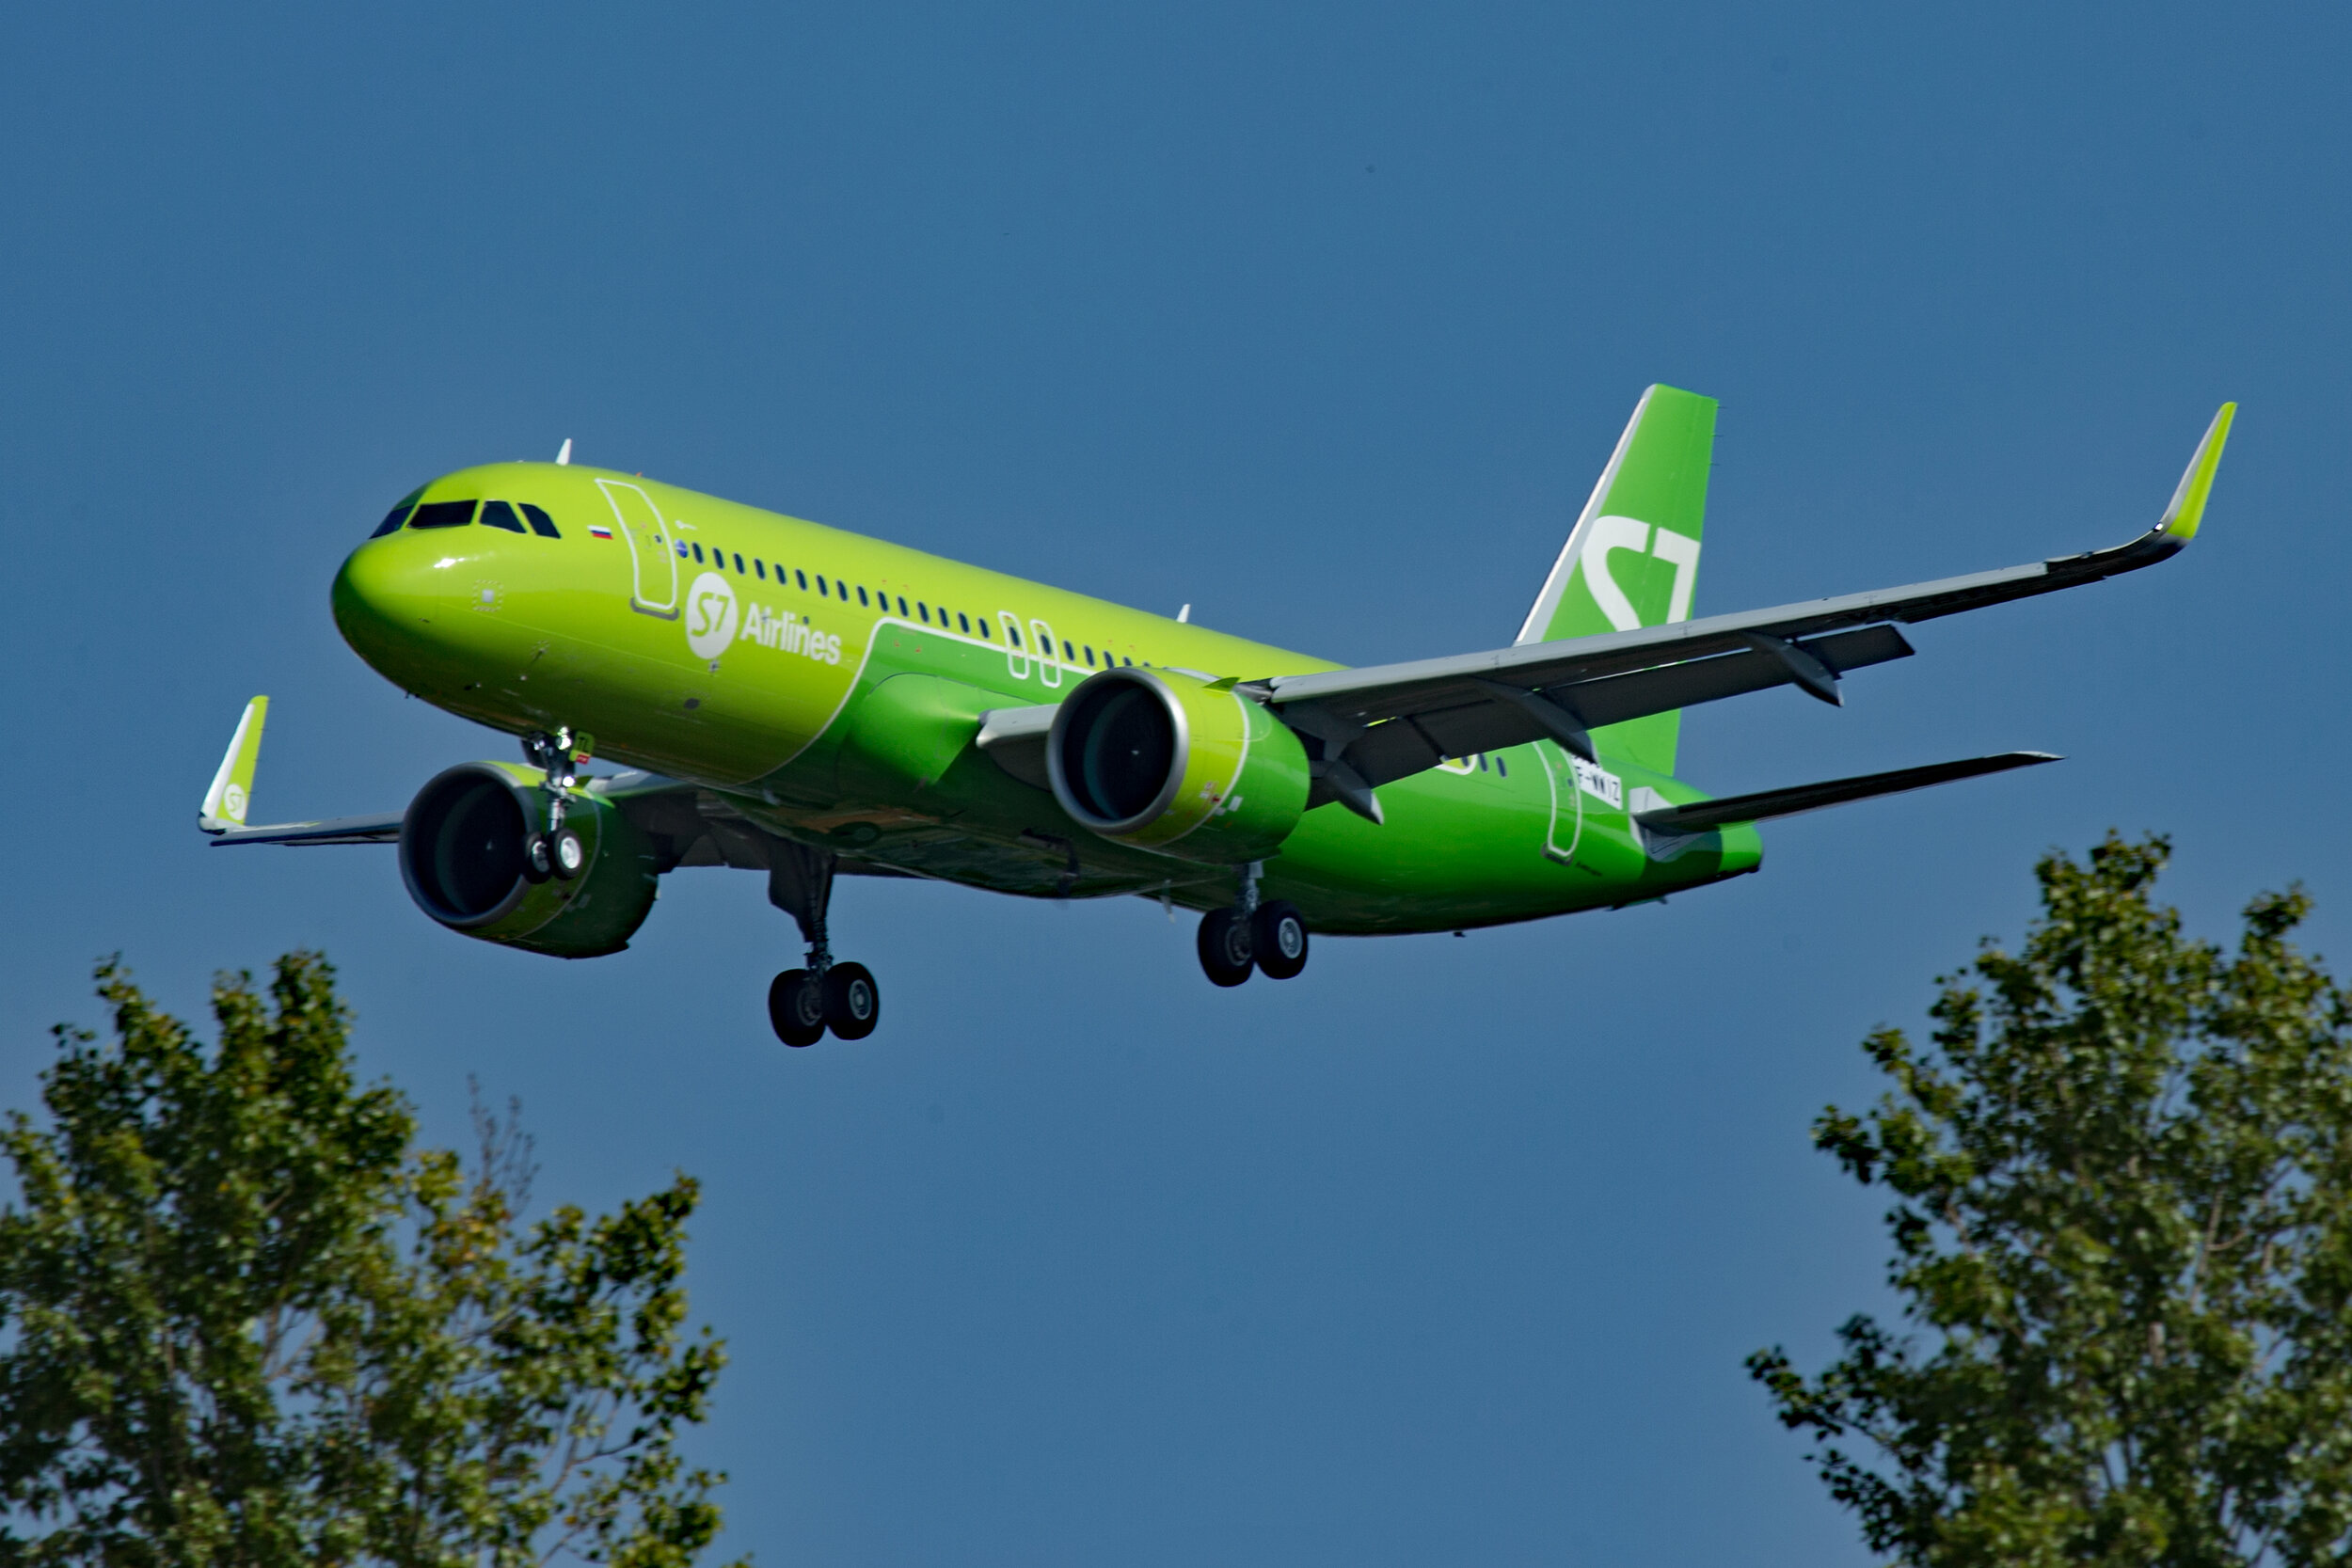 S7 Airlines A320N F-WWIZ / VQ-BTL looking very smart on short final to Runway 32 Left at Toulouse Blagnac on 20th September 2019. Photo: Peter Hampson